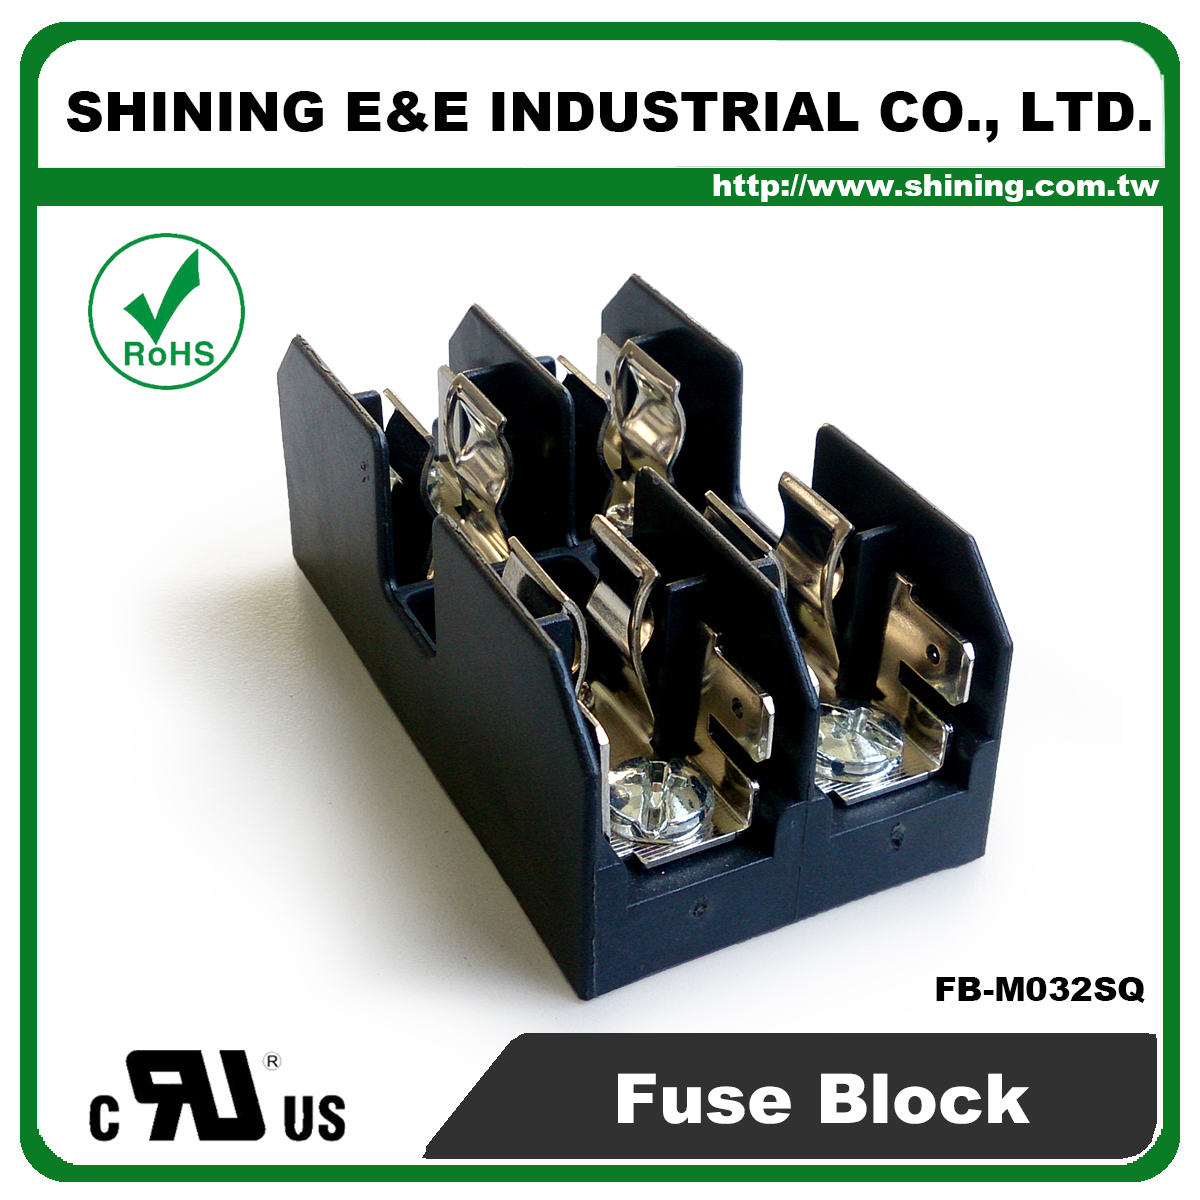 Taiwan Fb M032sq 600v 30amp 2 Way 10x38 Midget Fuse Block